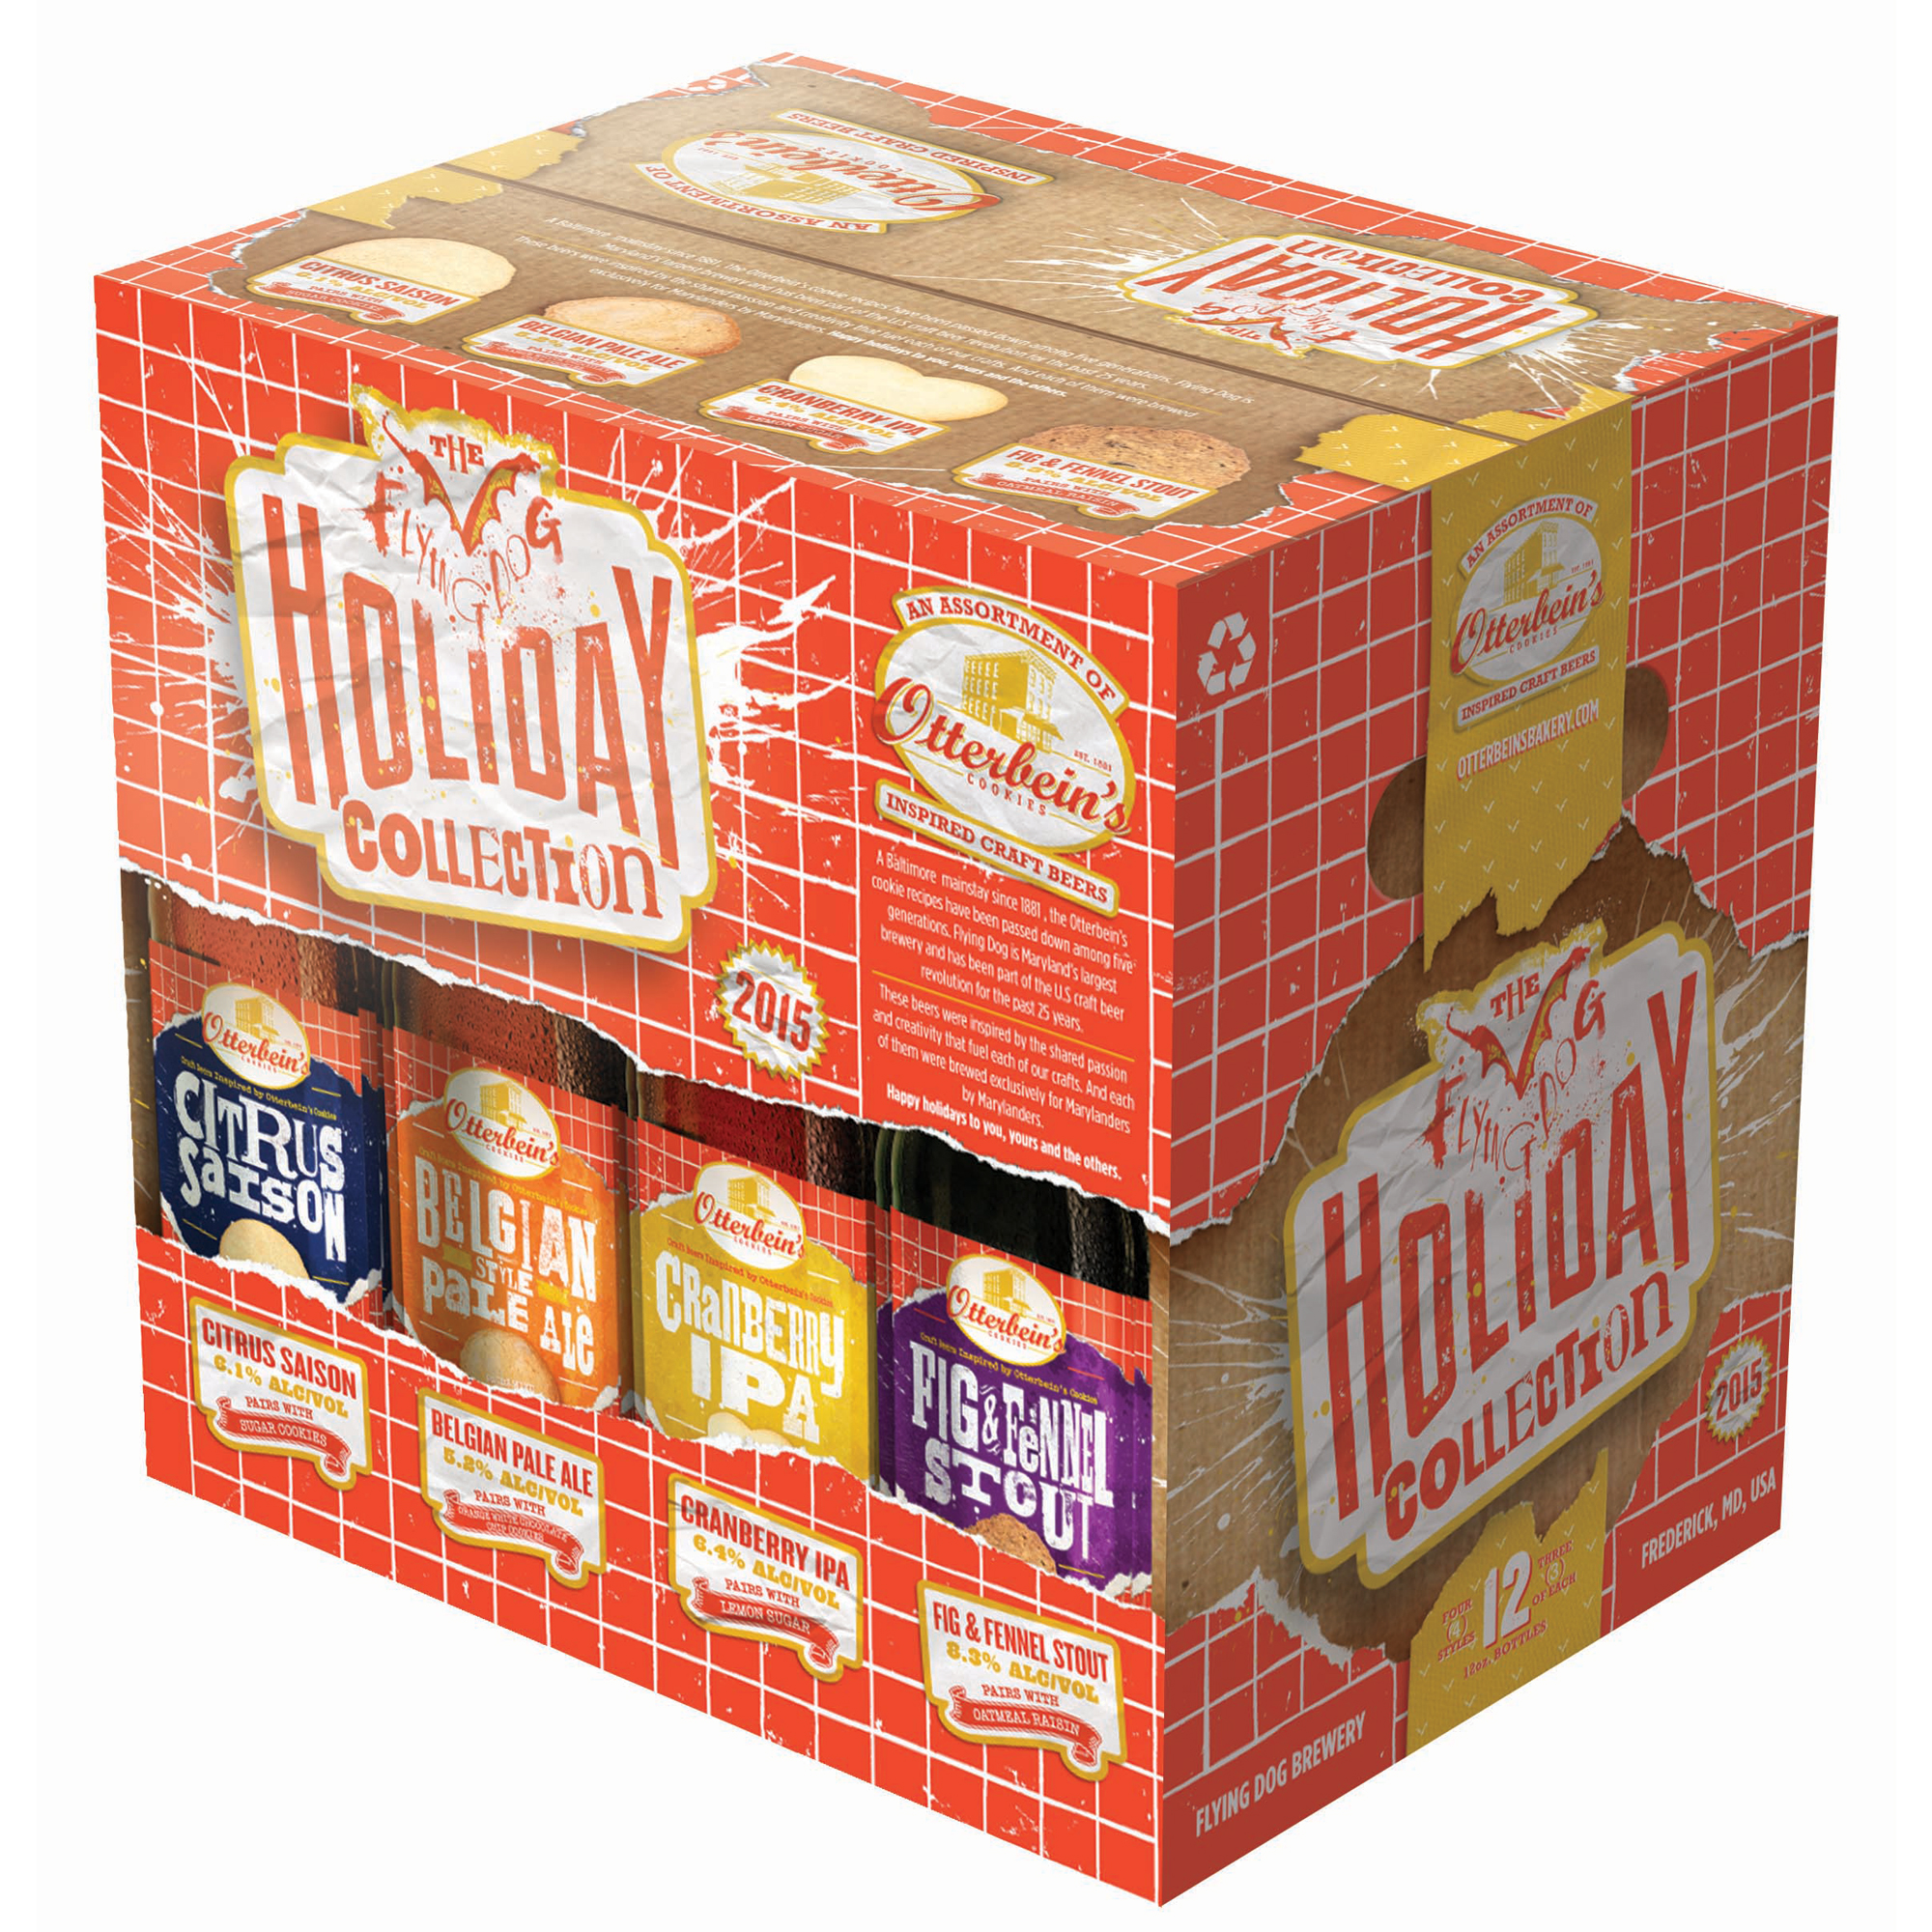 Flying Dog Holiday Beer Collection